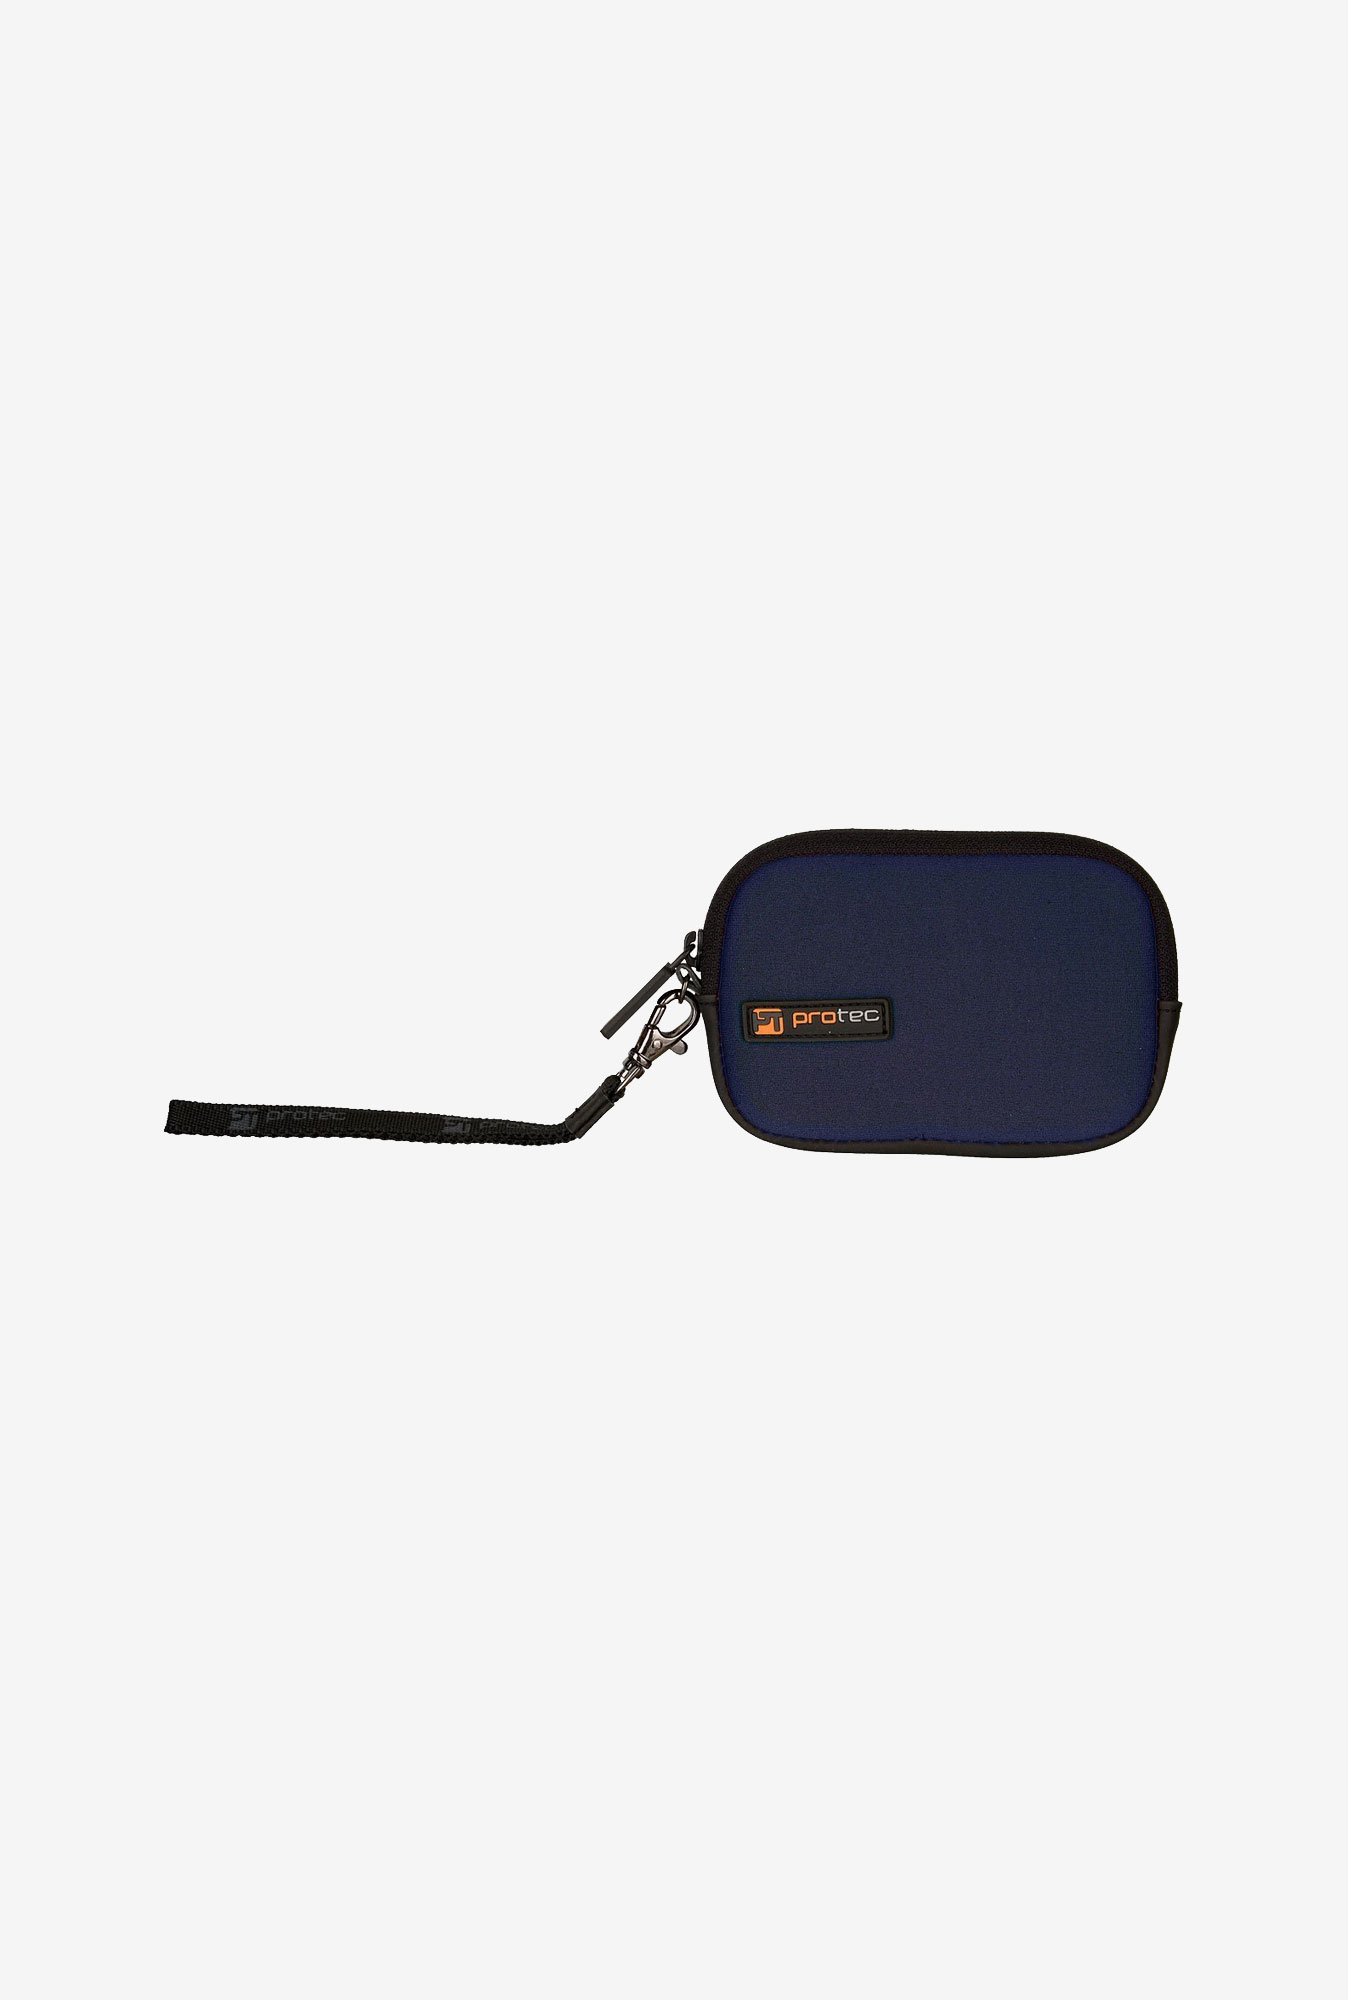 Protec A751BX Large Padded Neoprene Pouch (Navy Blue)